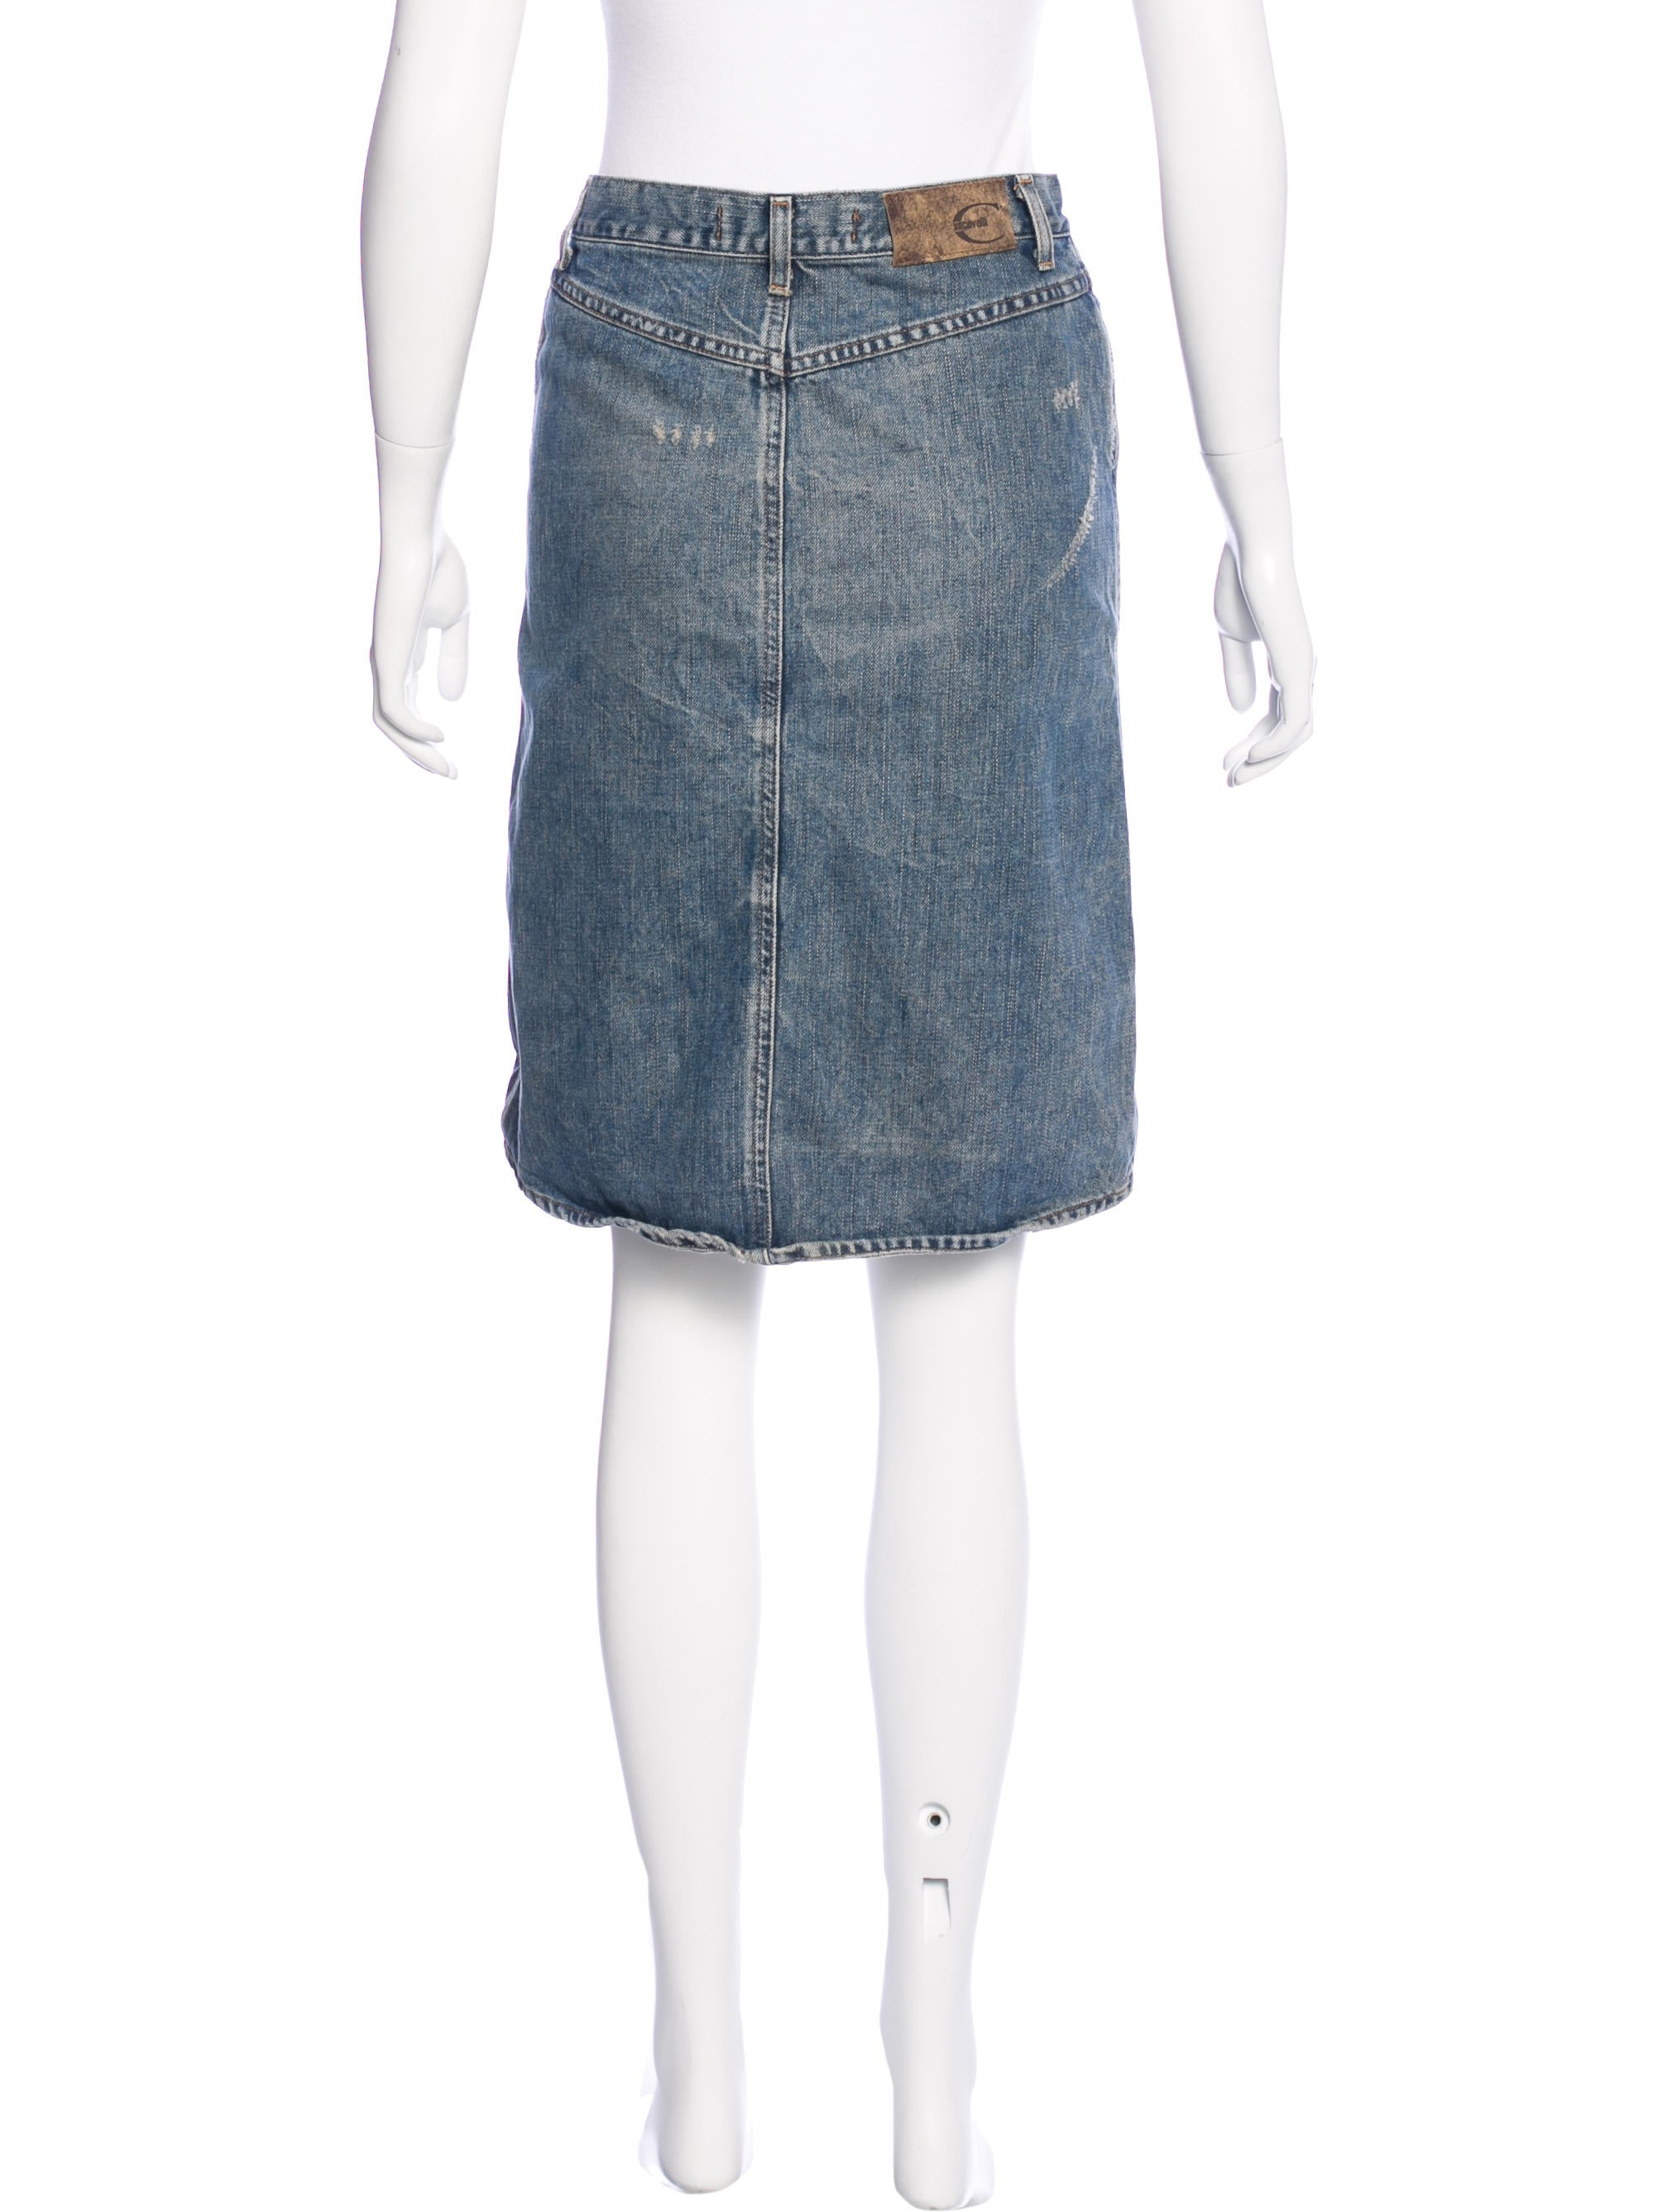 Just Cavalli Distressed Denim Skirt - Clothing - WJU26458 | The RealReal